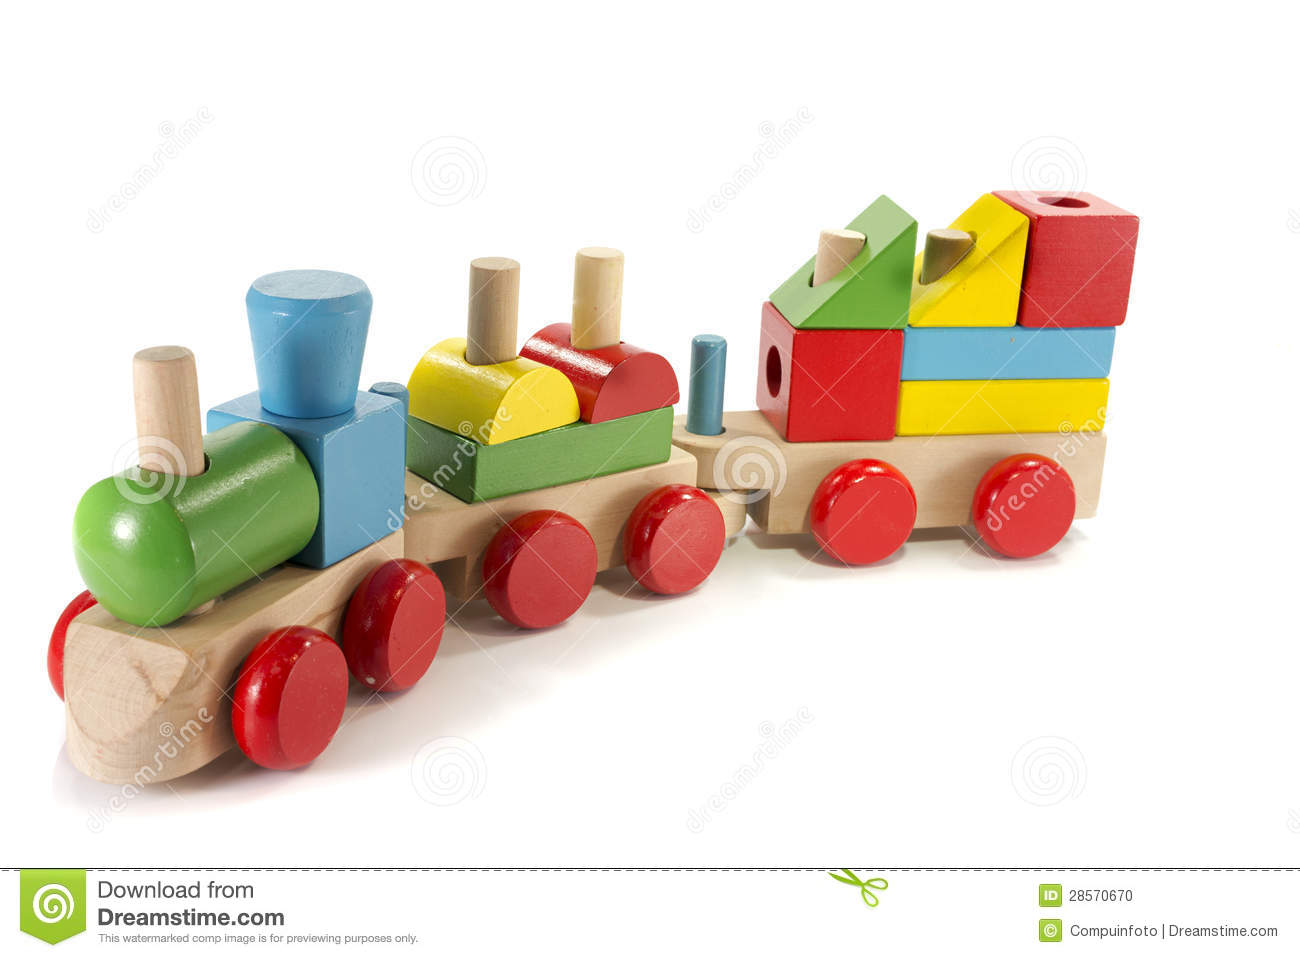 More similar stock images of ` Toy train made from wood `